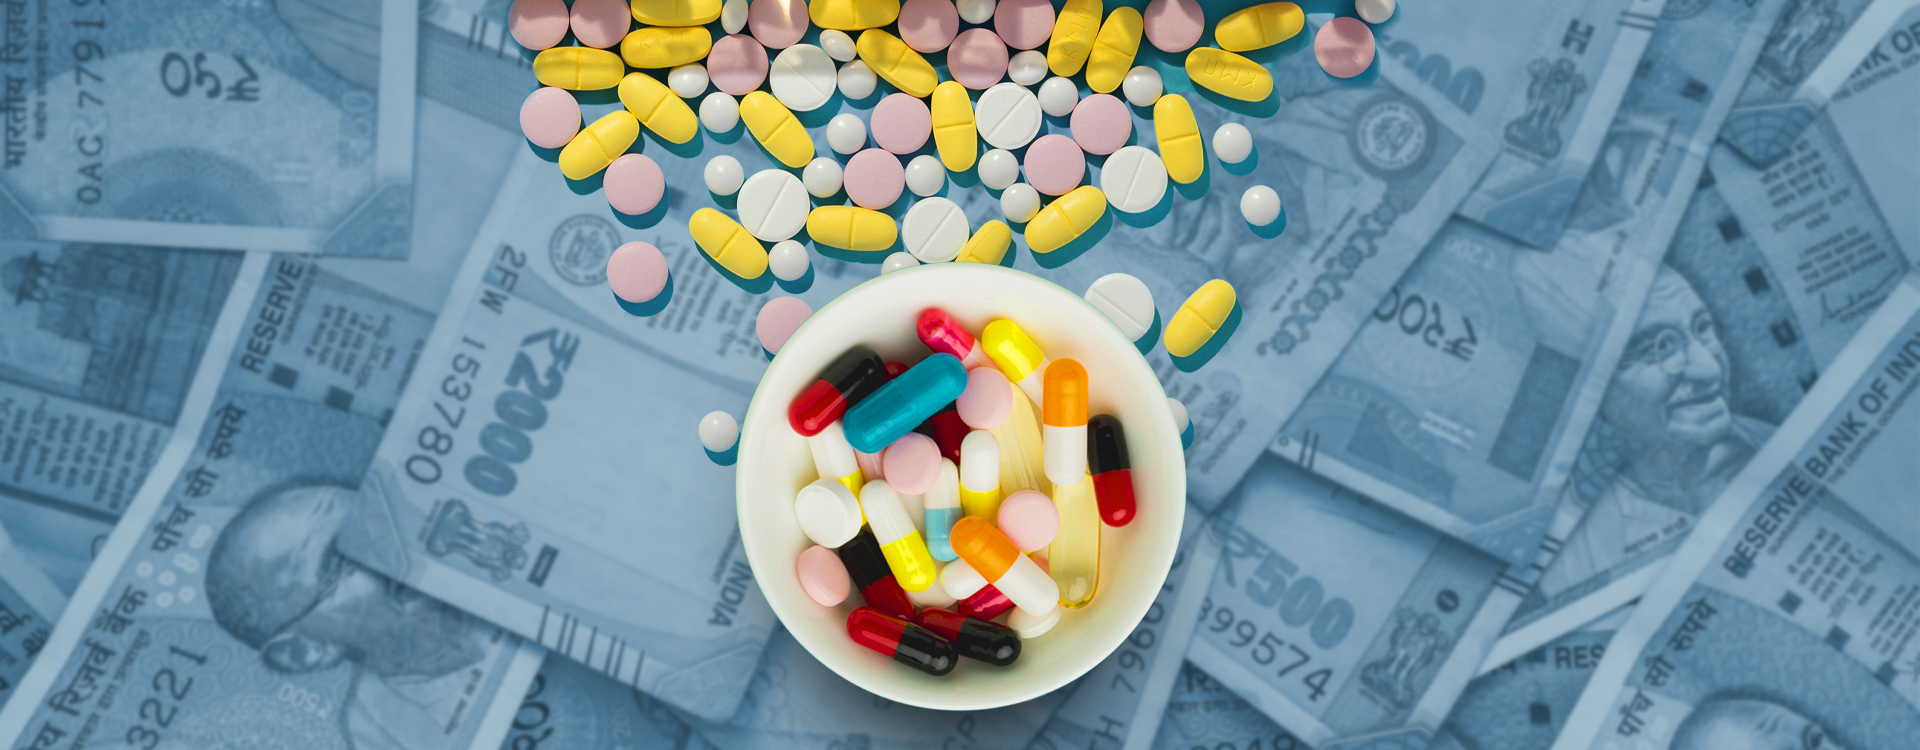 drug pricing regulation by the government